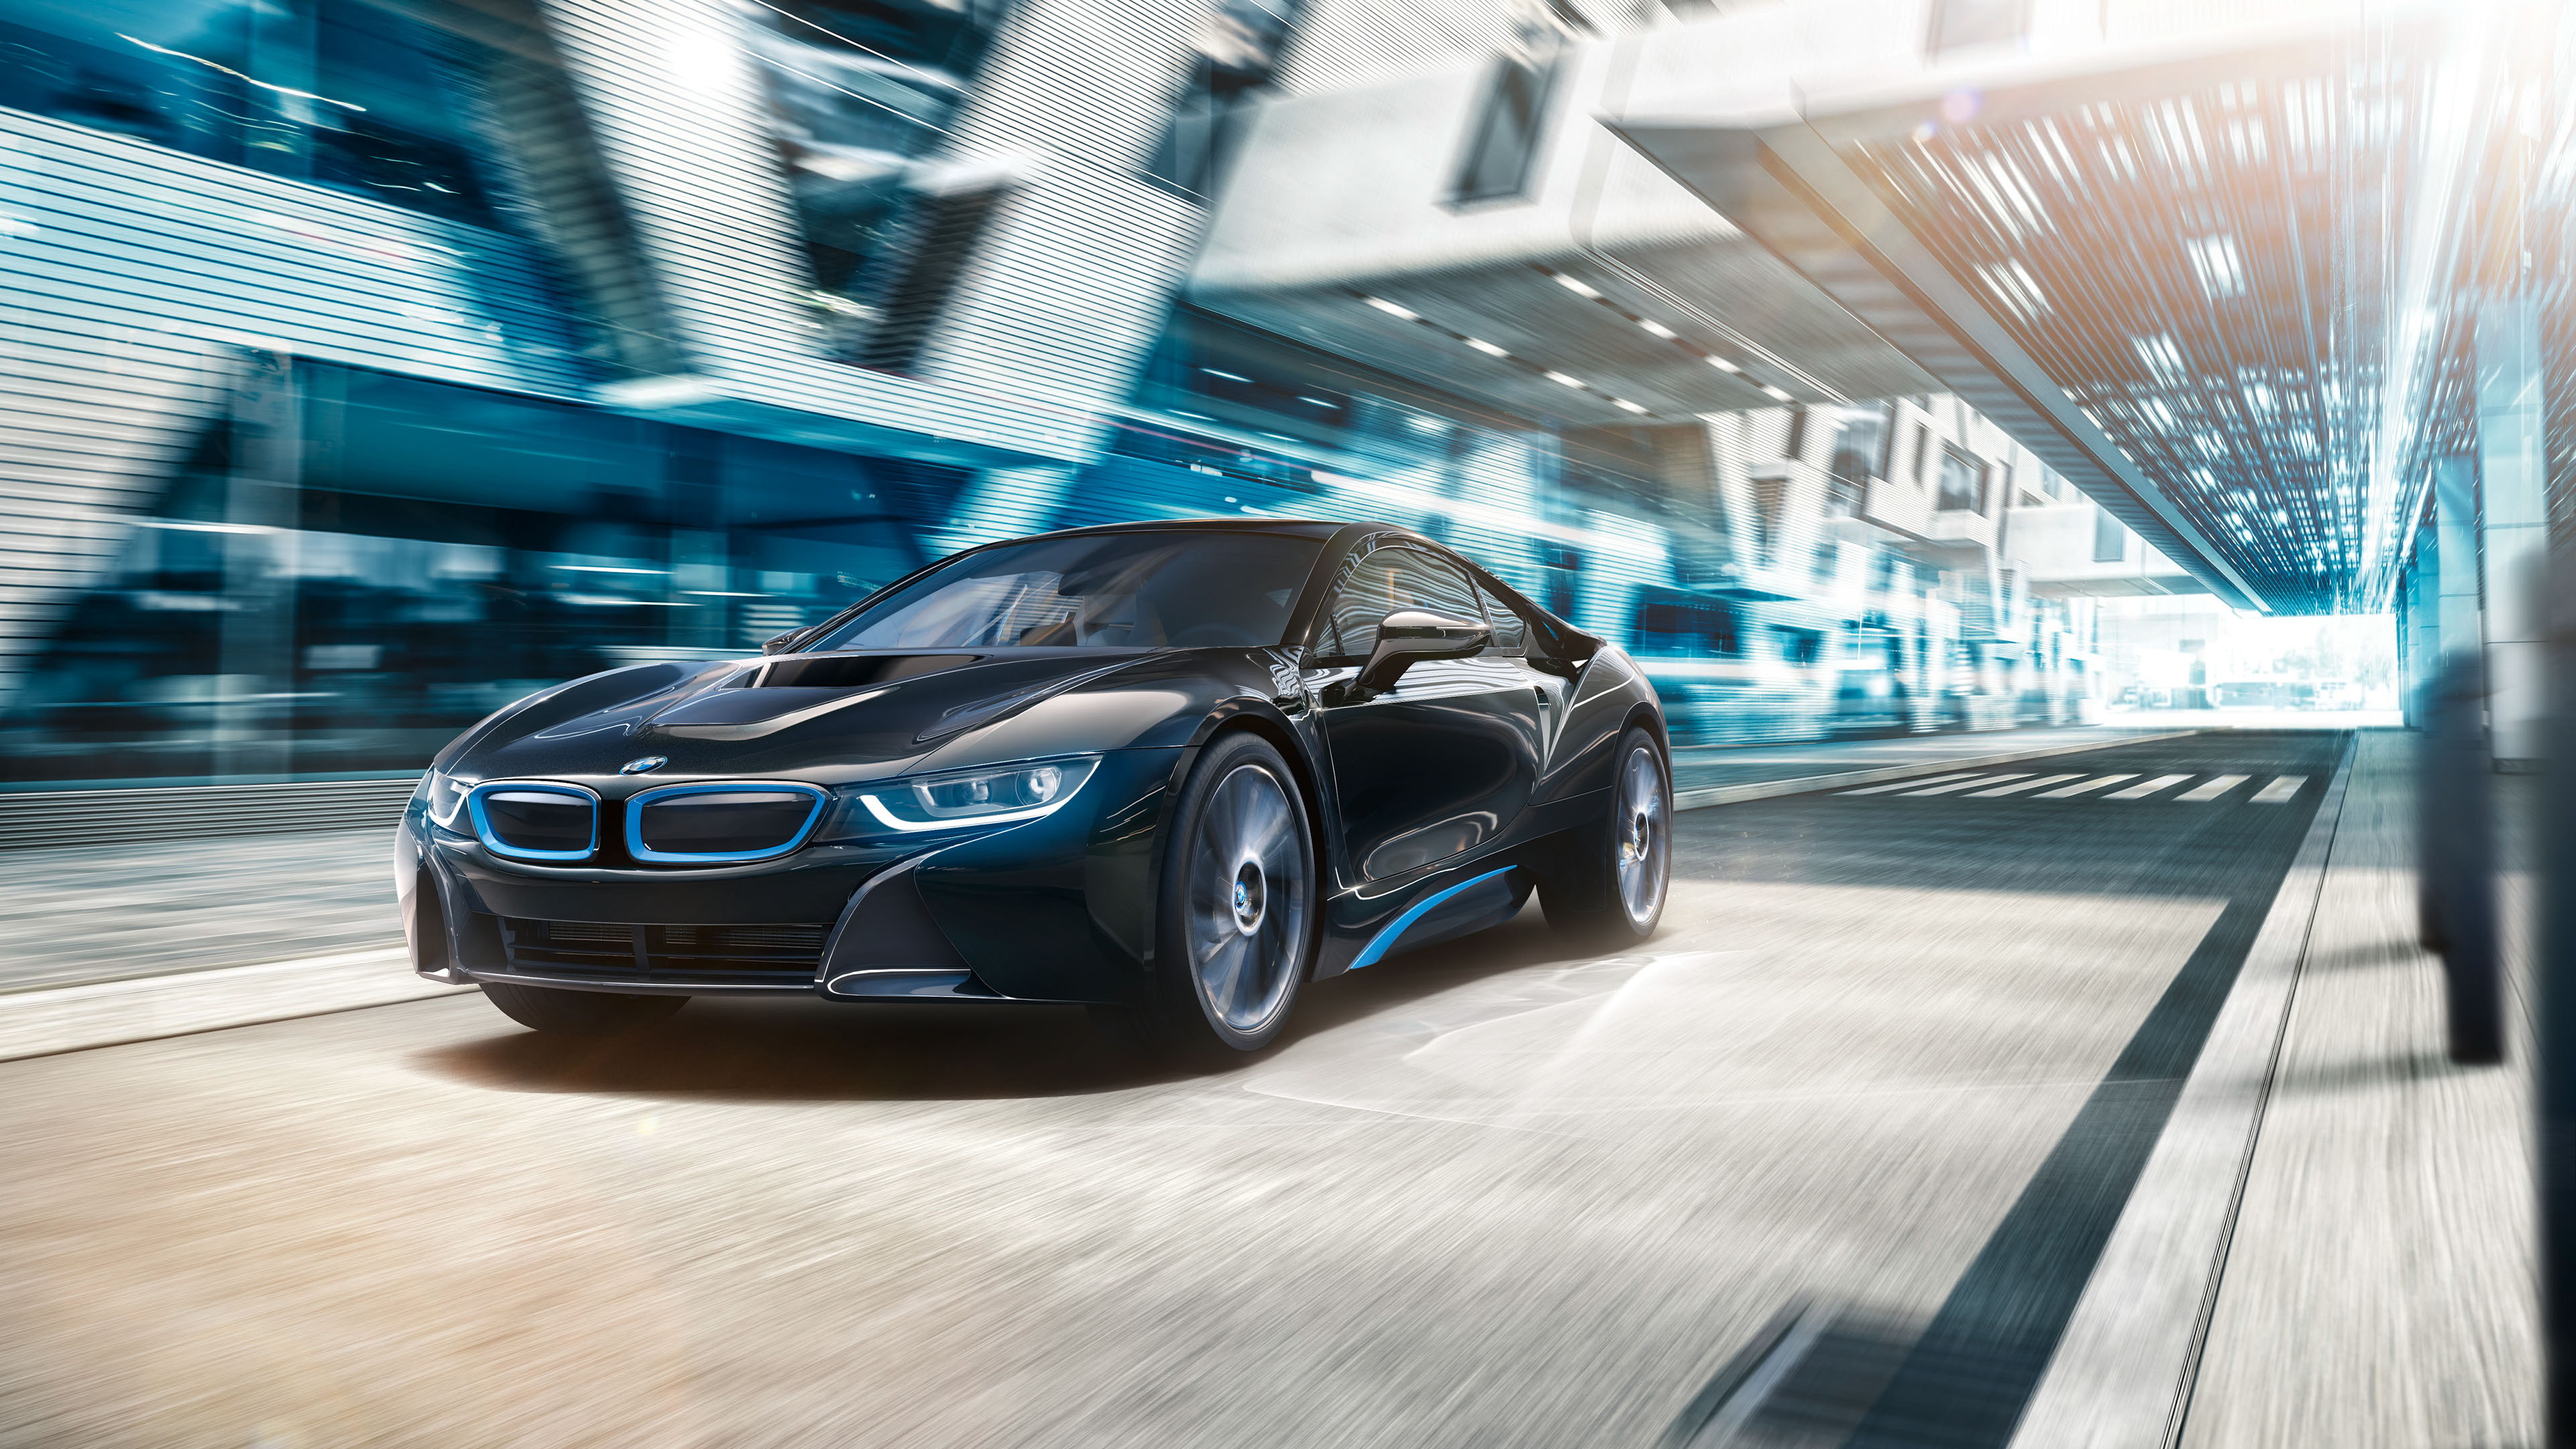 Bmw I8 Night Black 4k Wallpaper Hd Car Wallpapers Id 8099